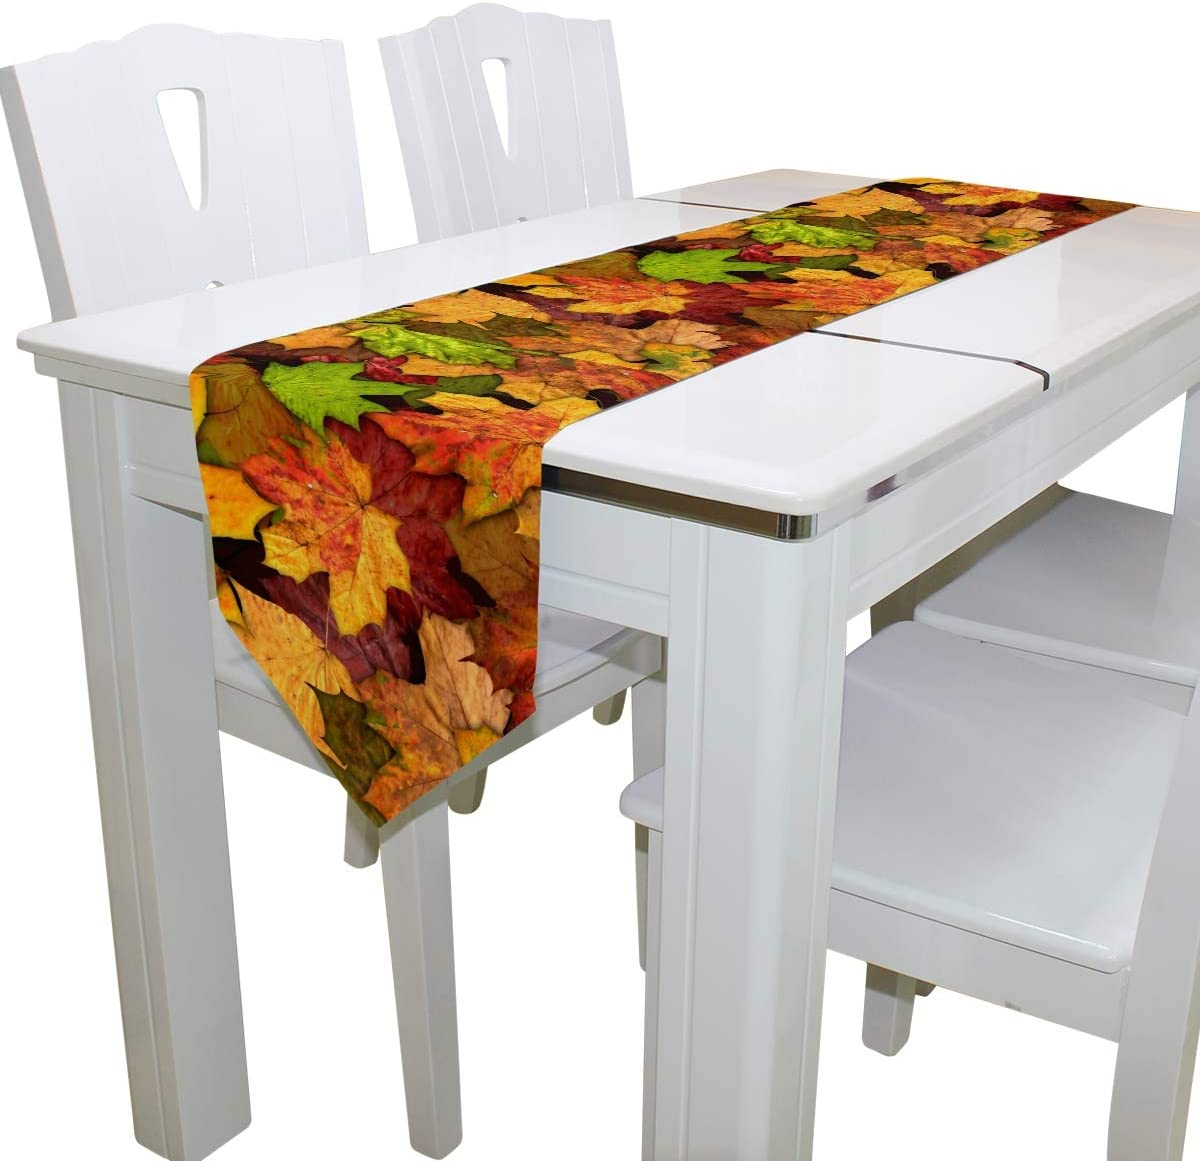 TFONE Autumn Fall Maple Leaf Table Runner Durable Polyester Fabric Table Runners for Kitchen Dinner Holiday Wedding Parties Decor 13 x 70 Inches Long